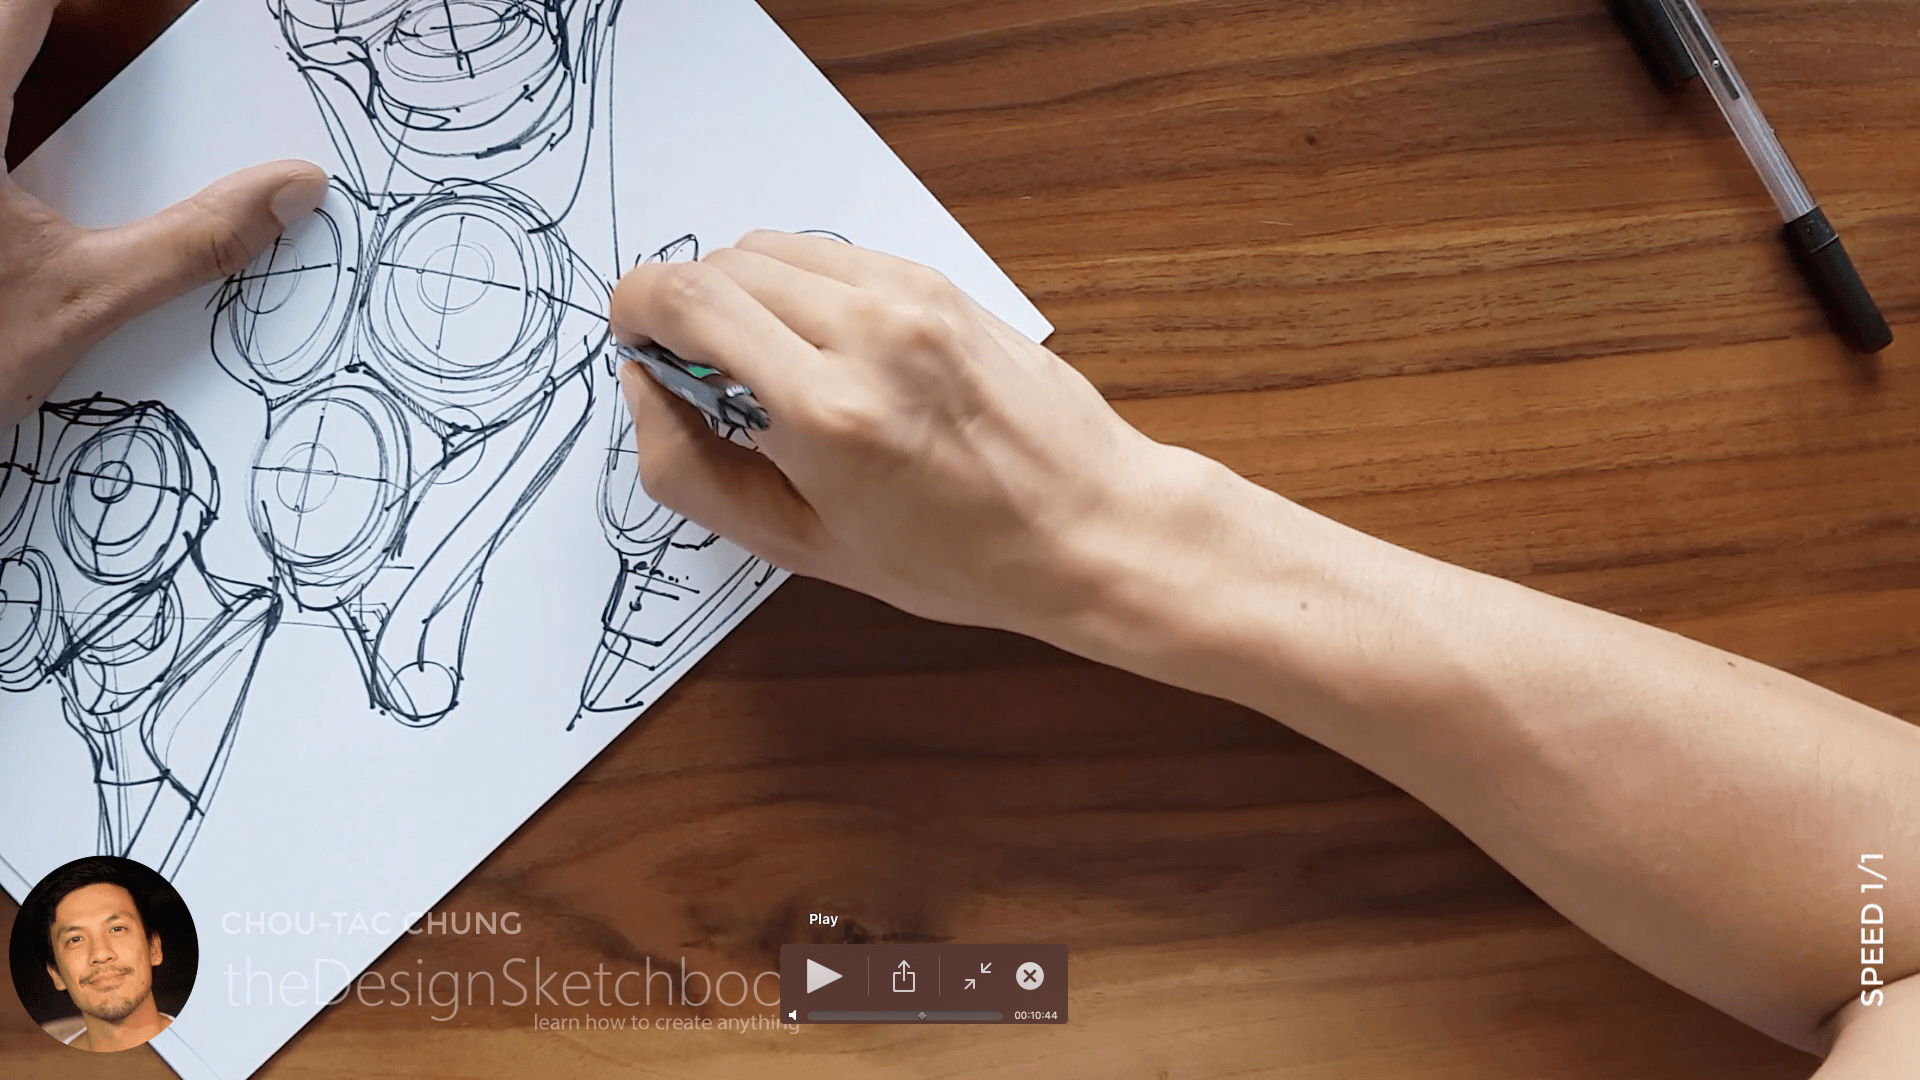 Sketching an electric shaver PHILIPS with the pilot twin marker pen - the design sketchbook - chung chou tac e7